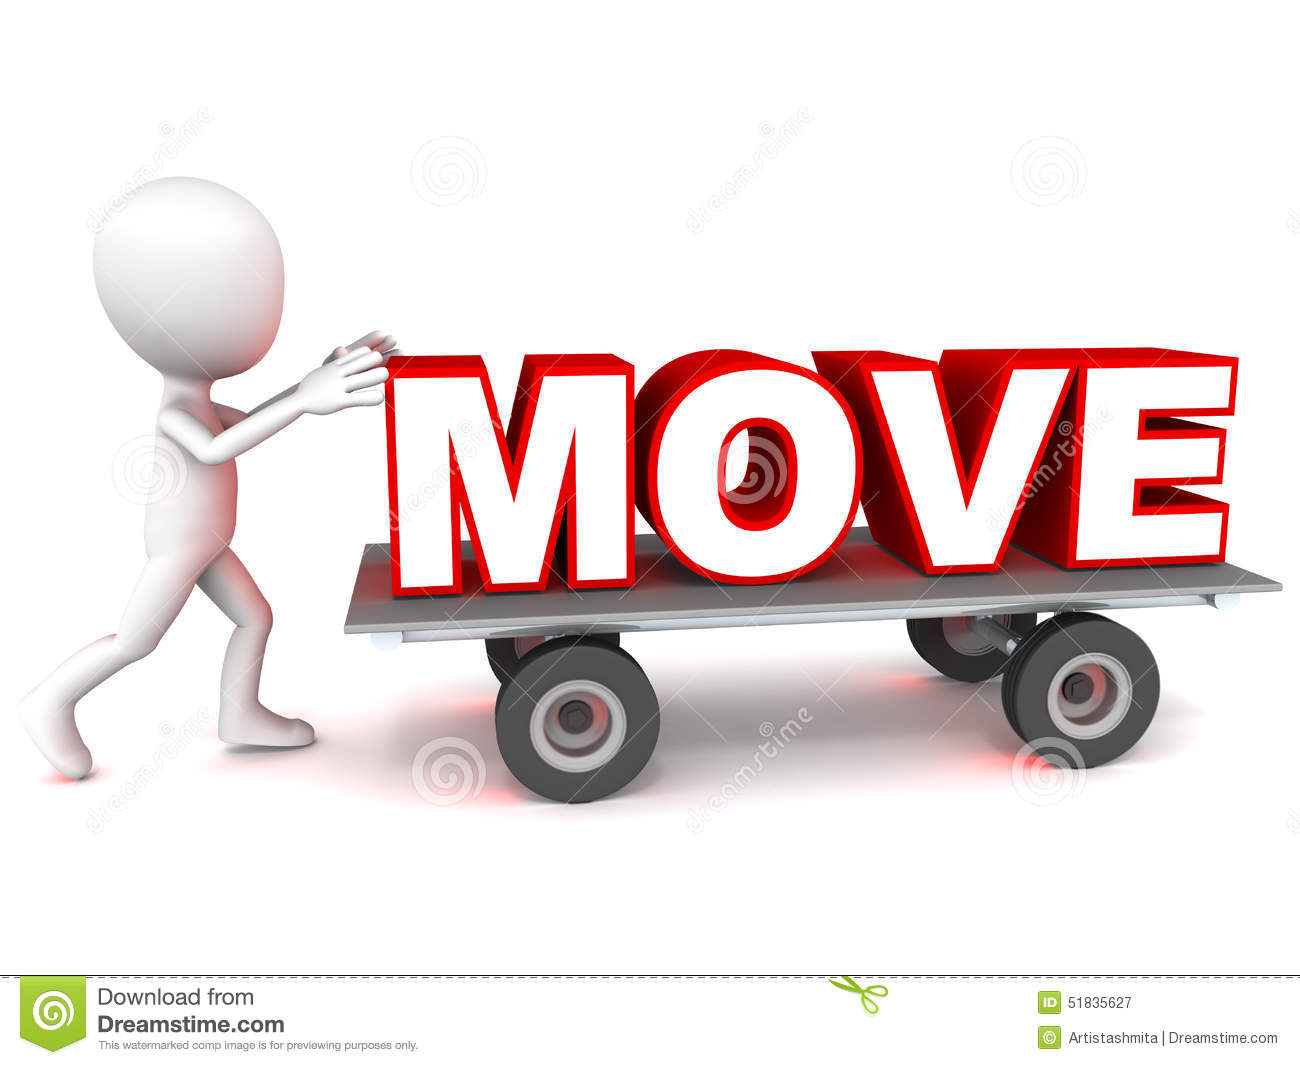 move clipart in word 2010 - photo #44